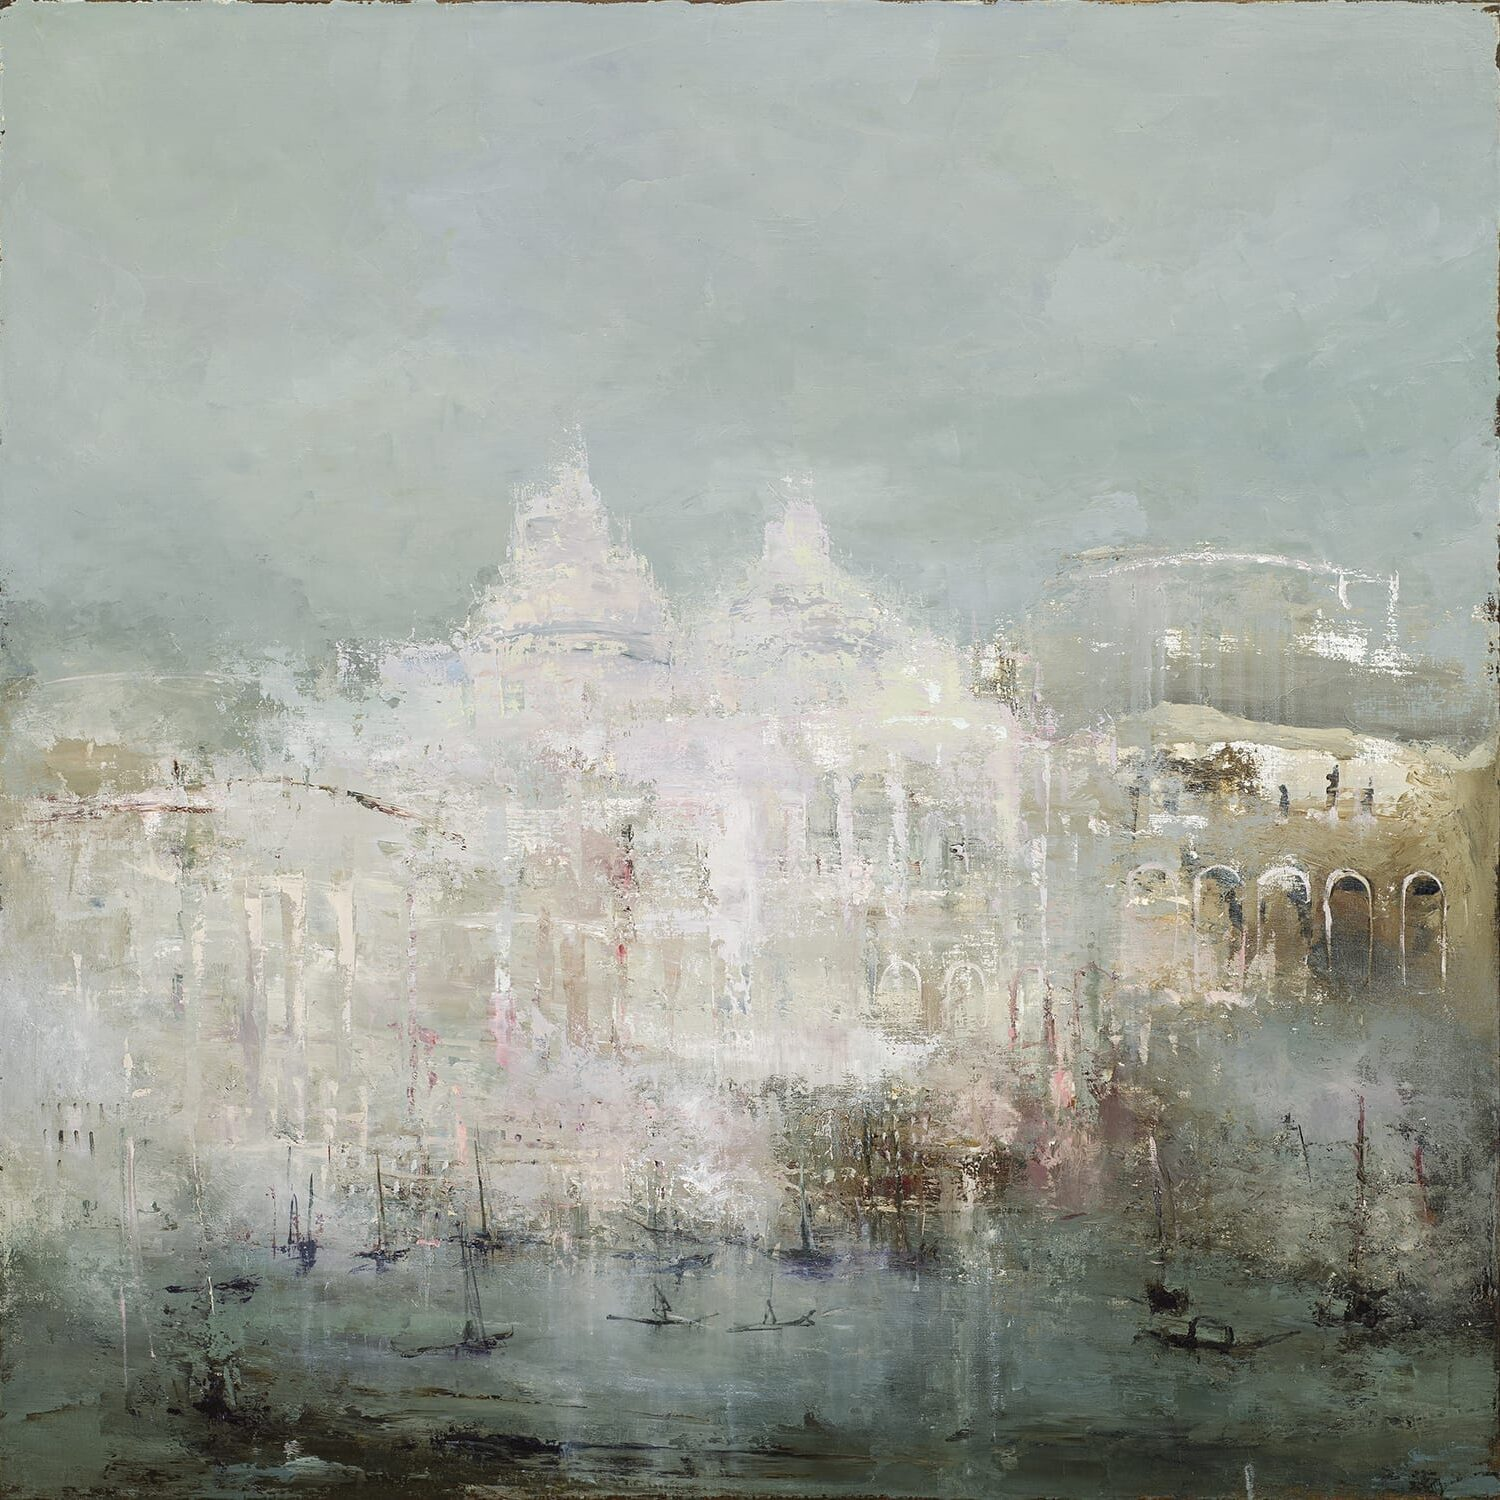 JODOIN_2021_An-hour-is-a-sea-between-a-few-and-me_48-x-48_oil-on-linen_5830-USD-UF-2